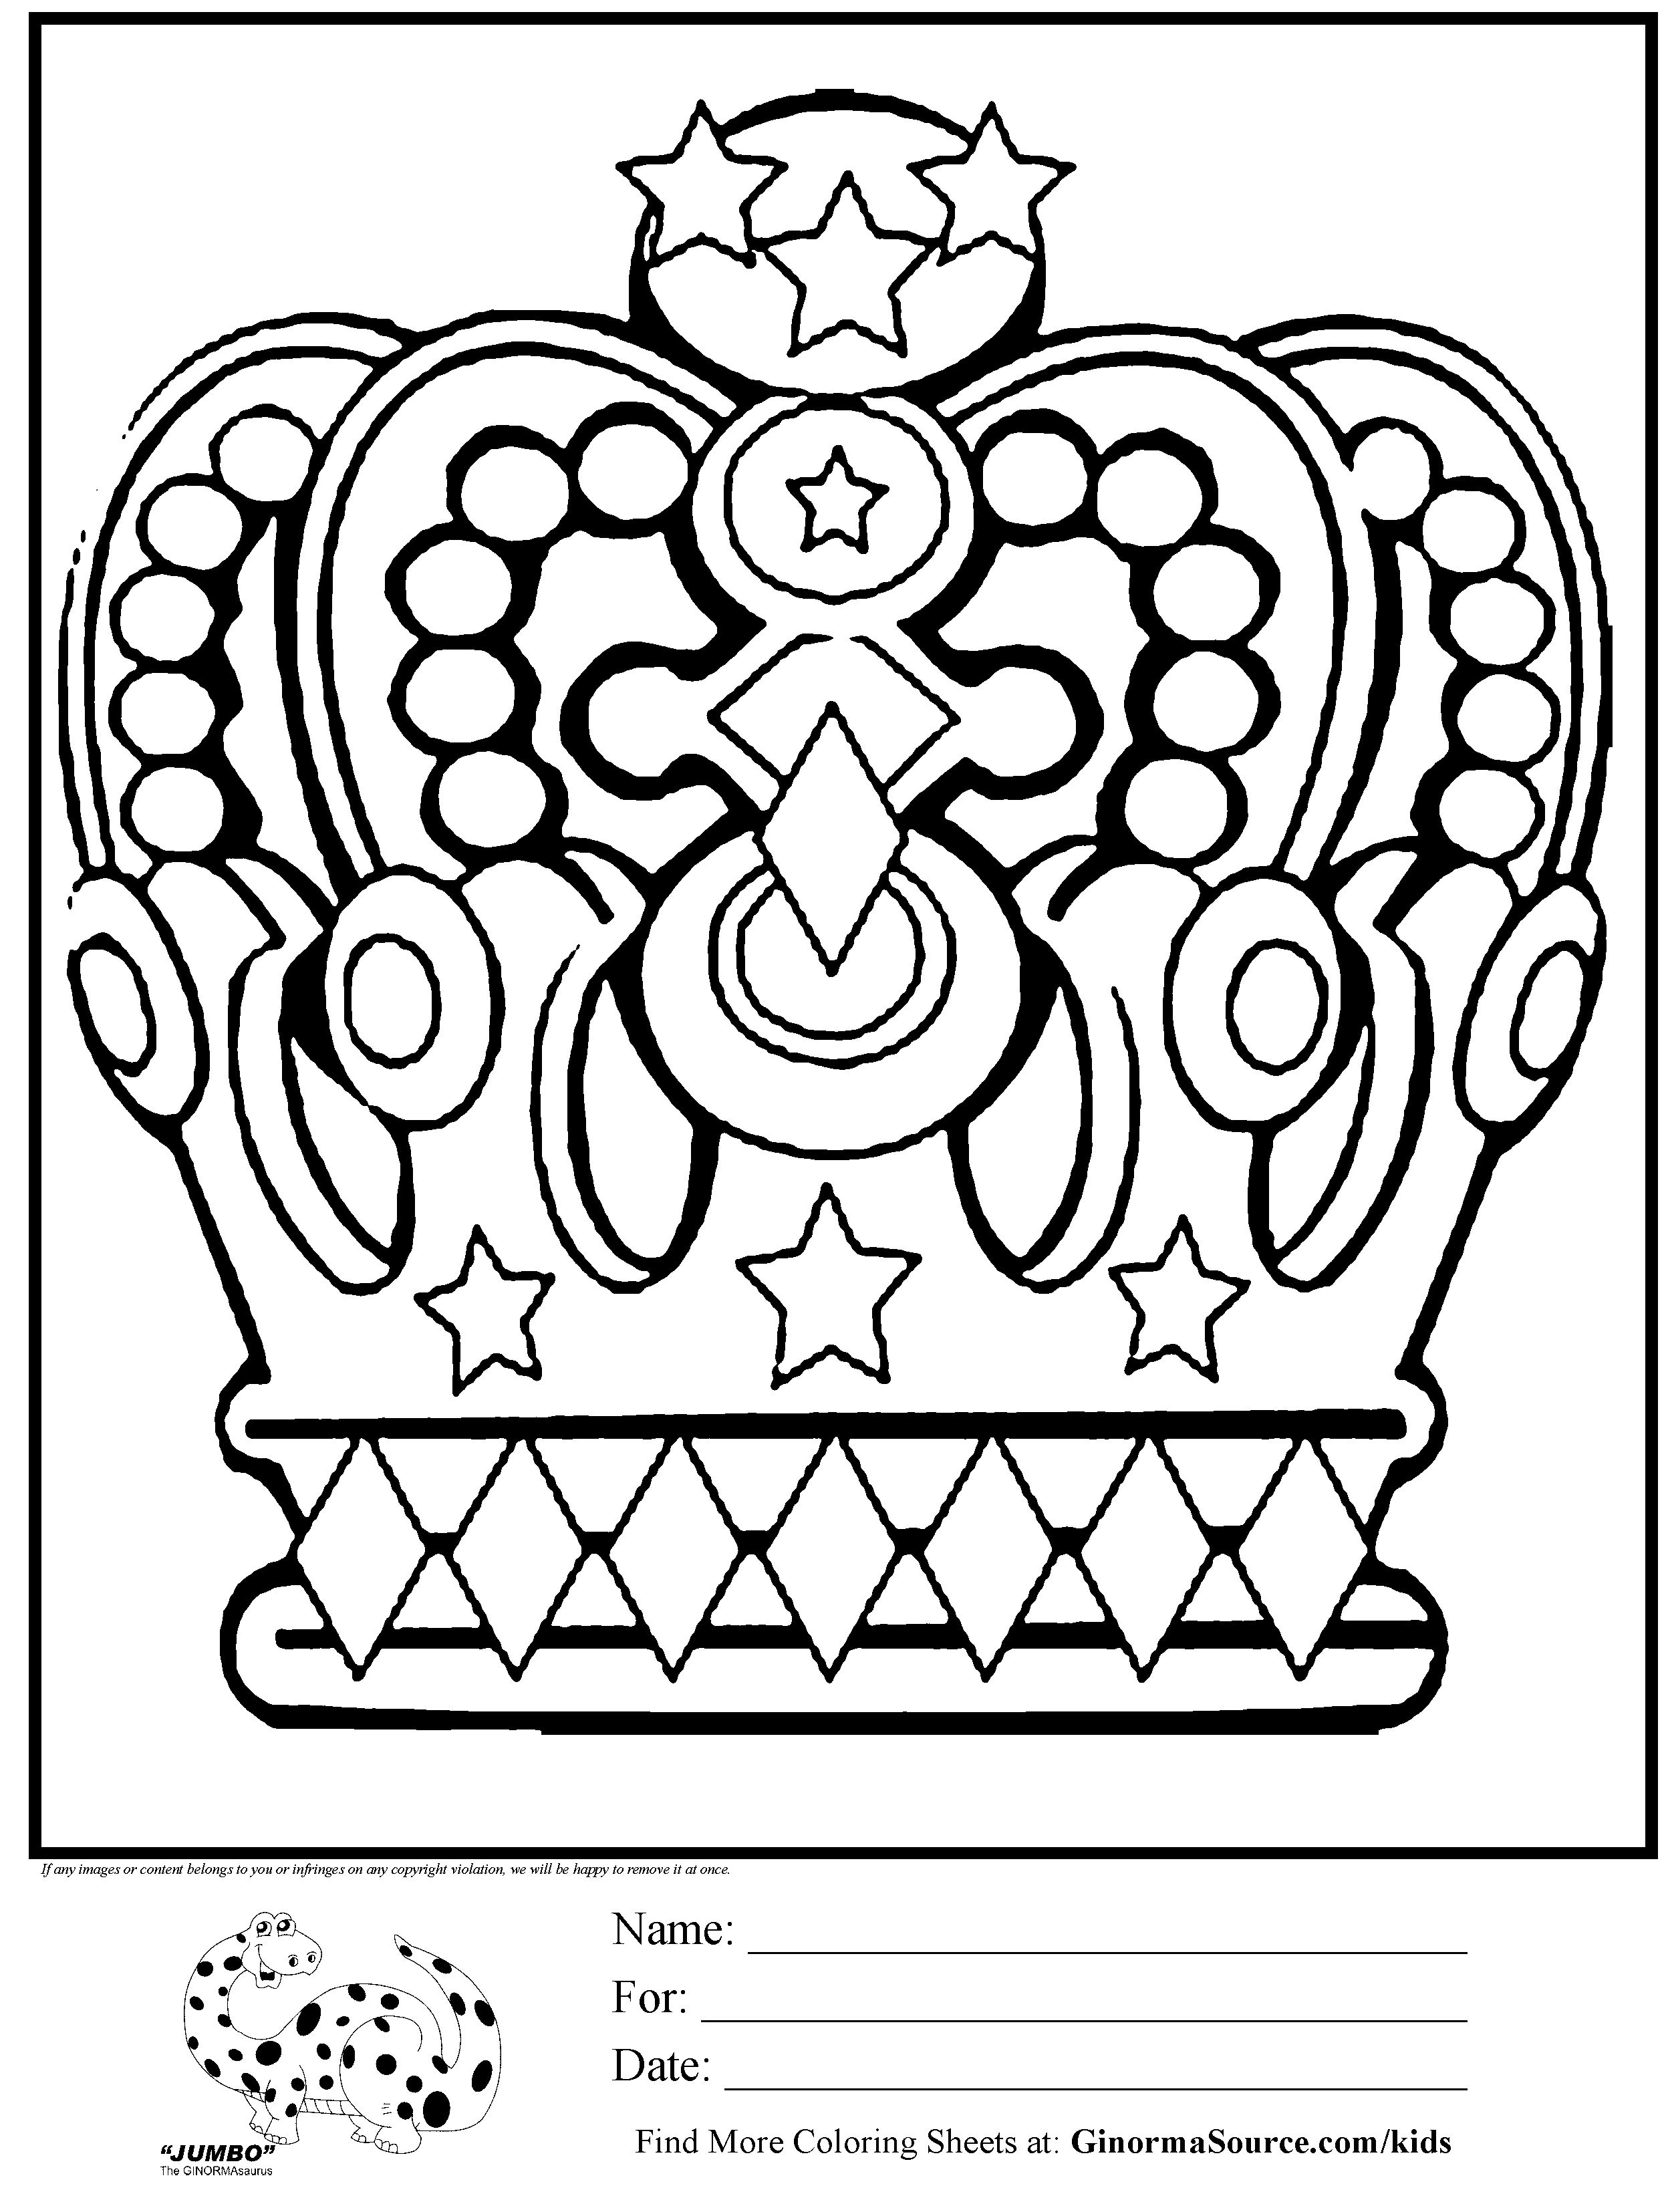 Crown Coloring Page   King Crowns Coloring Pages